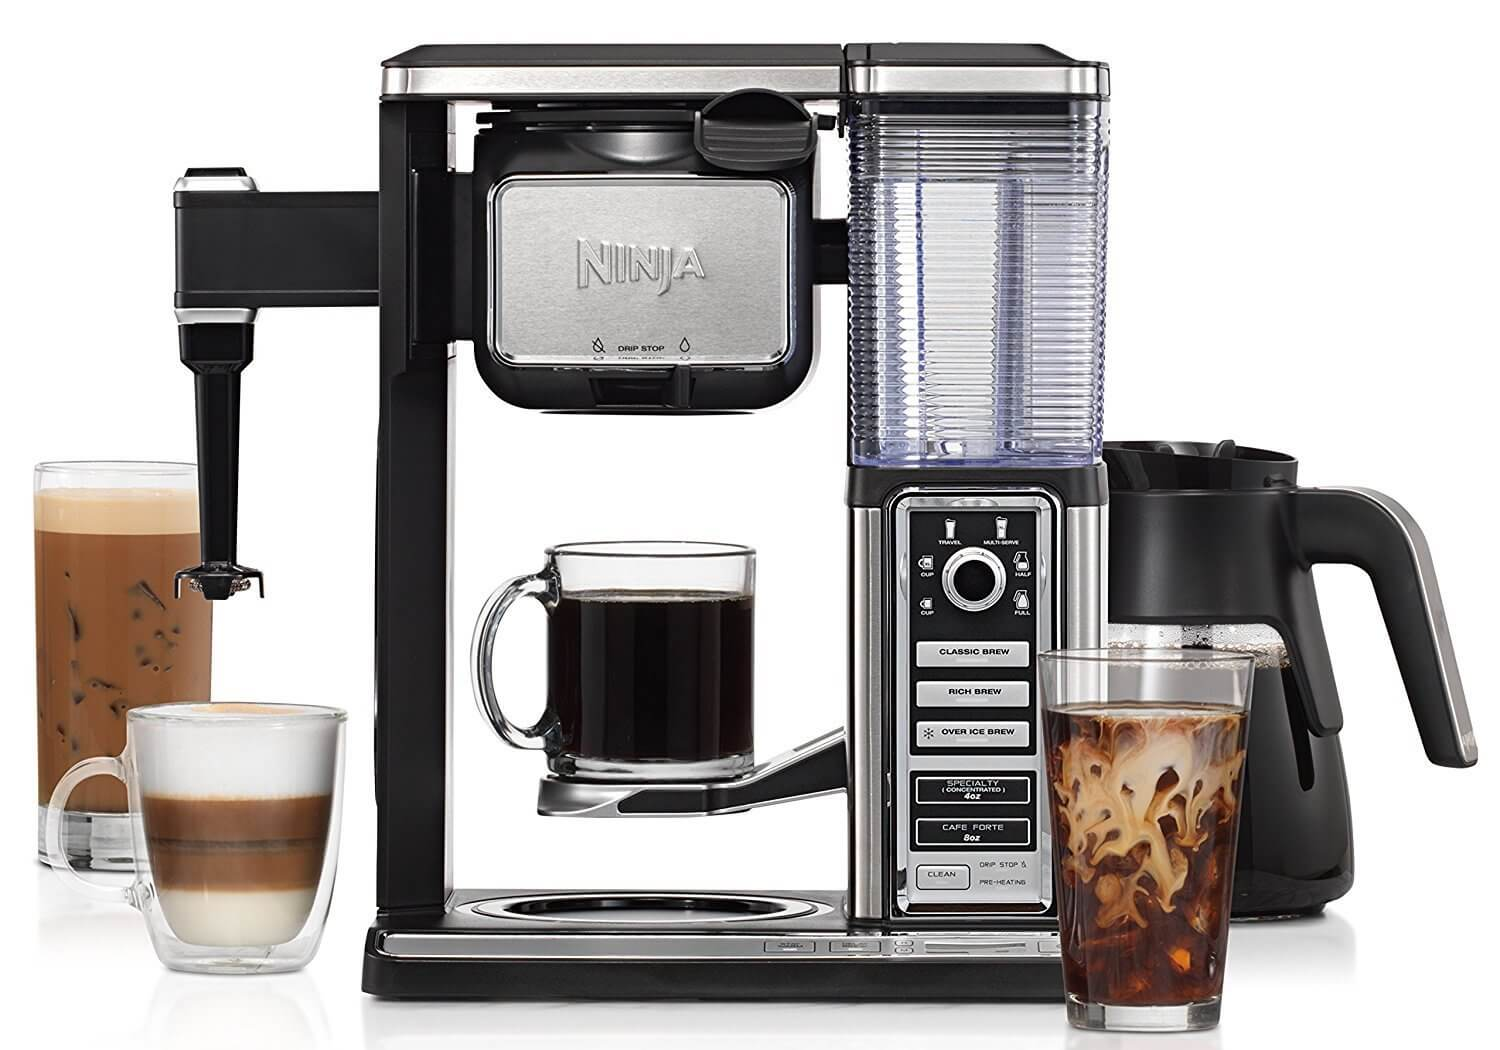 Ninja Coffee Bar Brewer System with Glass Carafe